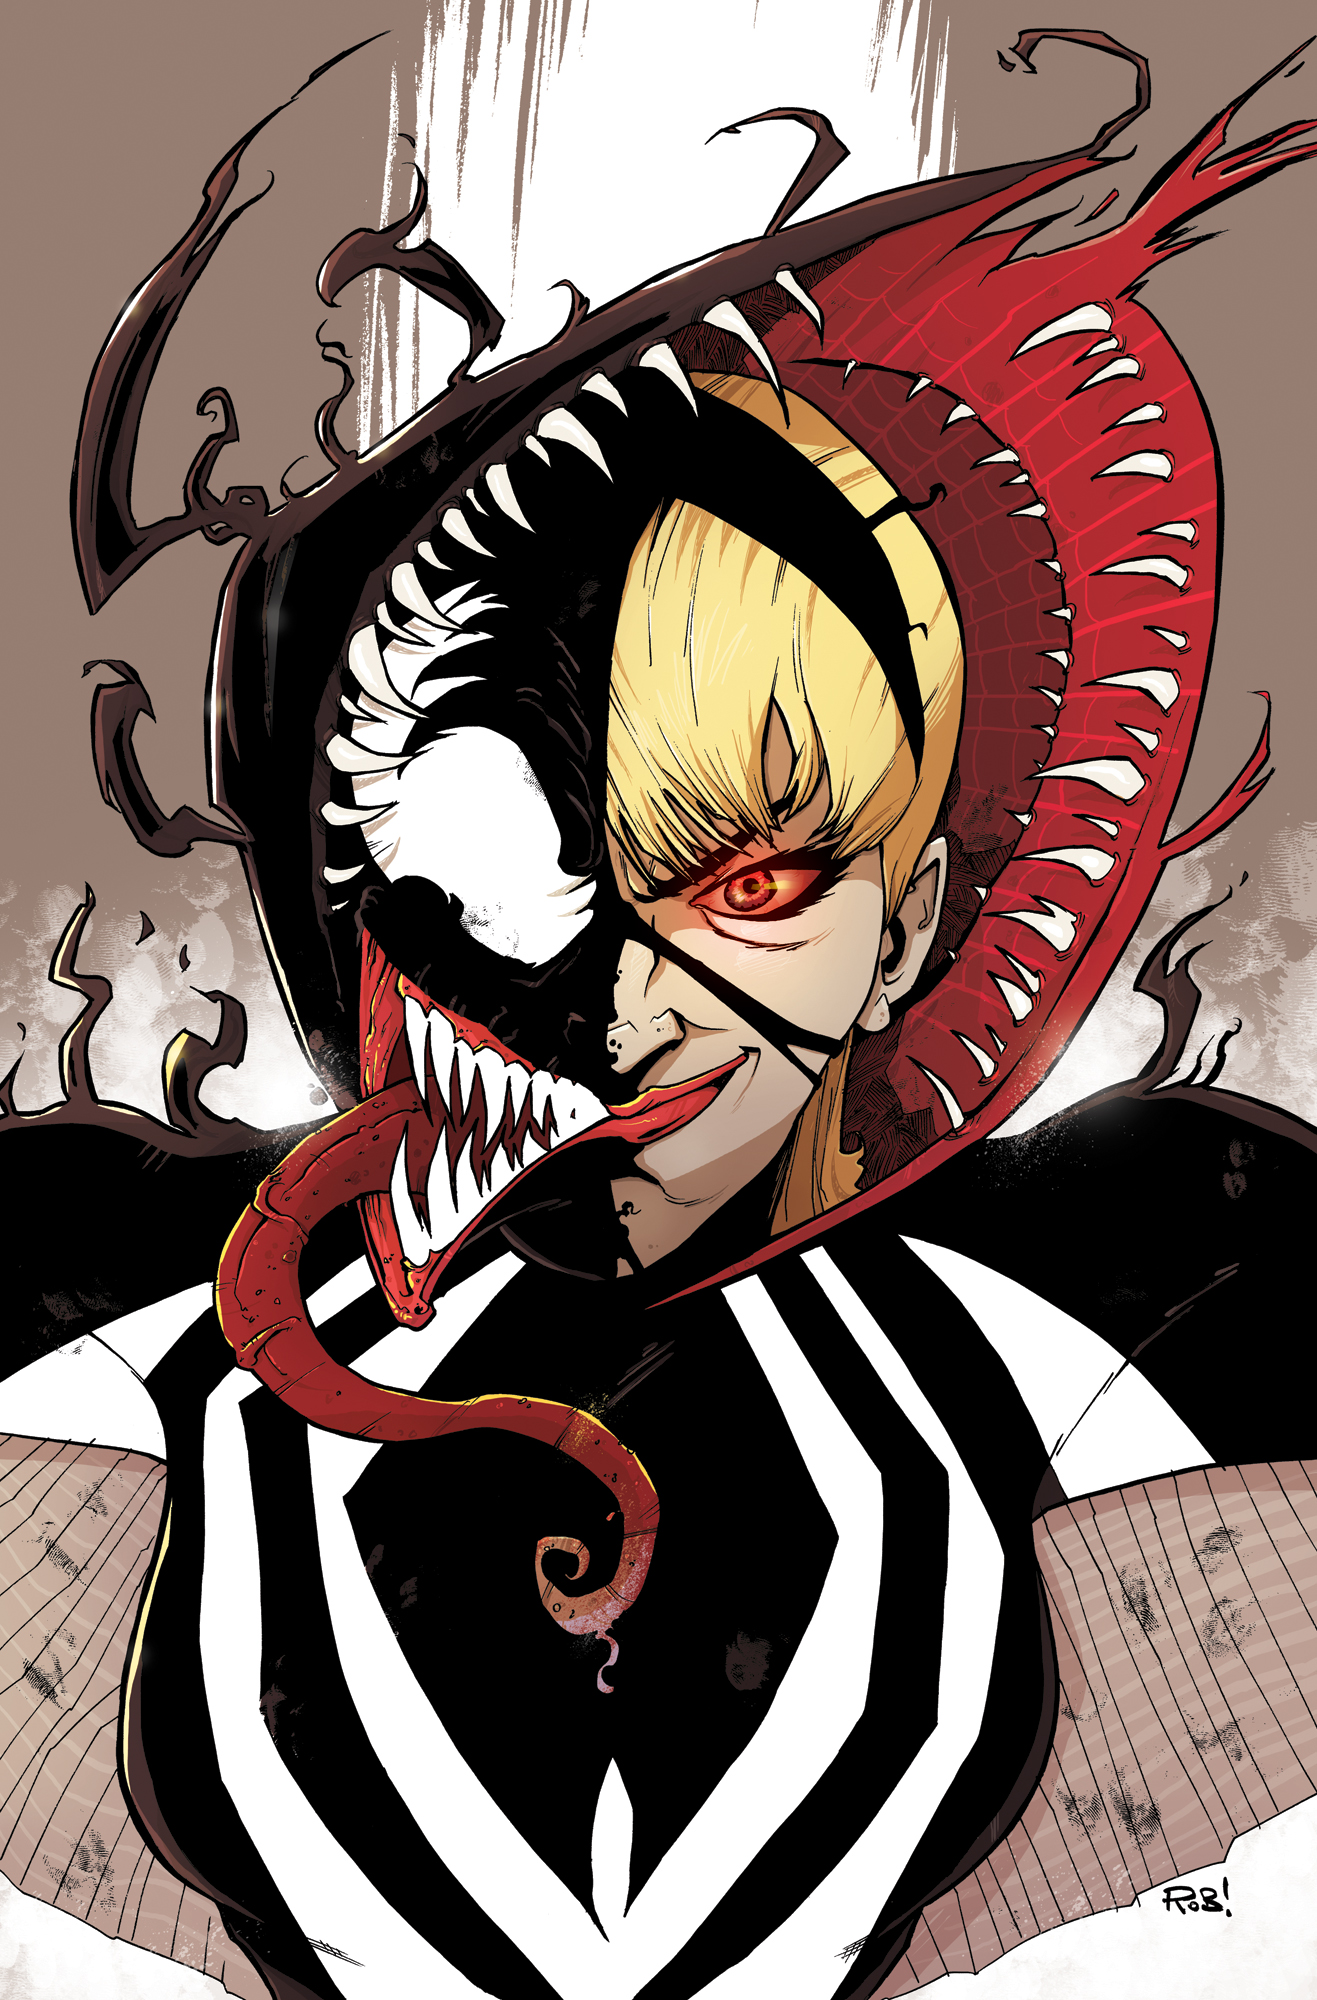 Guardians_of_Knowhere_1_Gwenom_Guillory_Variant